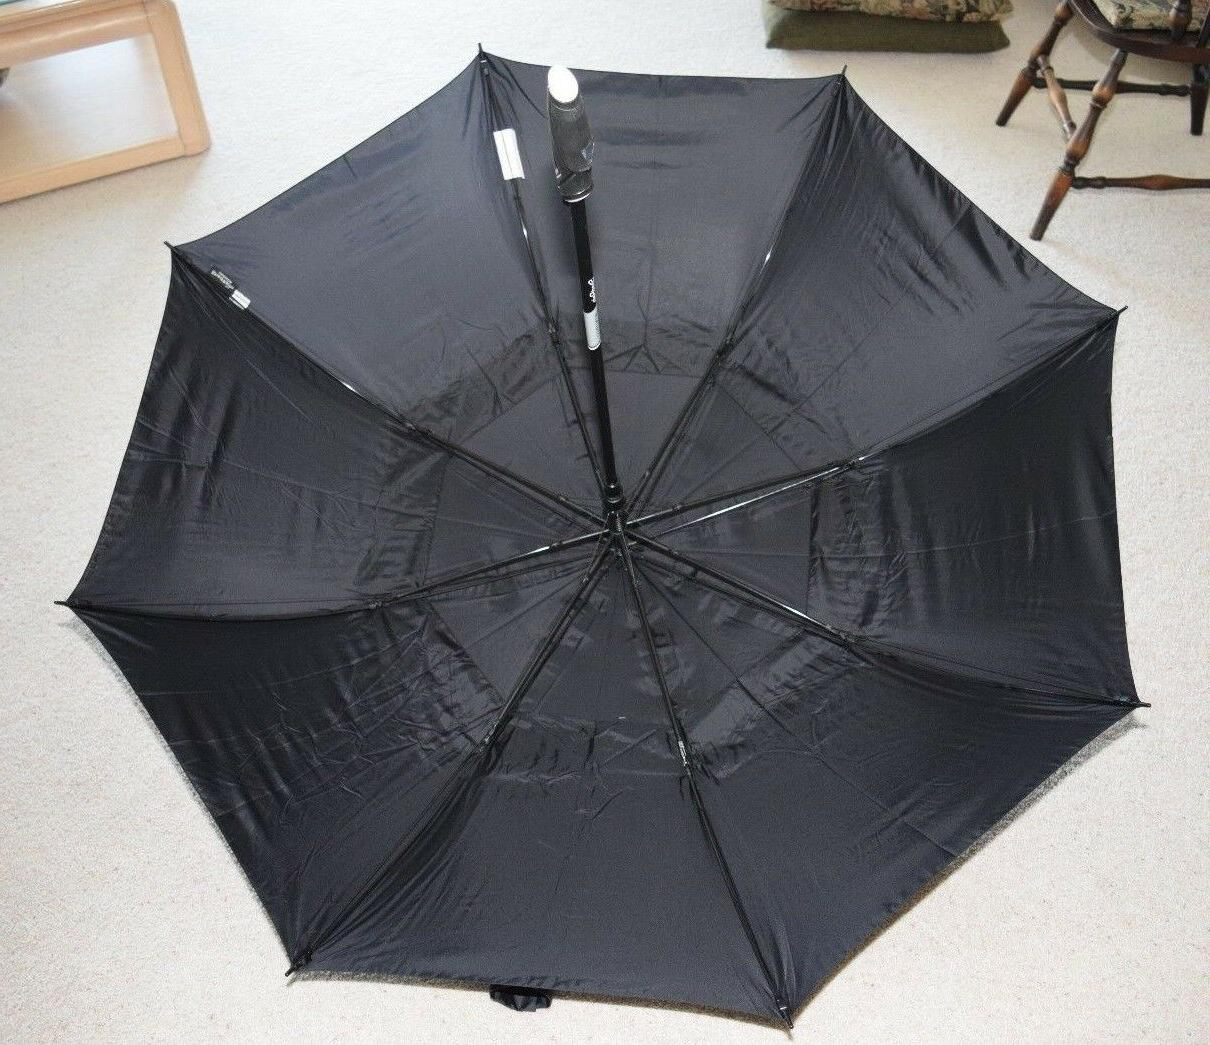 ShedRain Vented Umbrella Arch